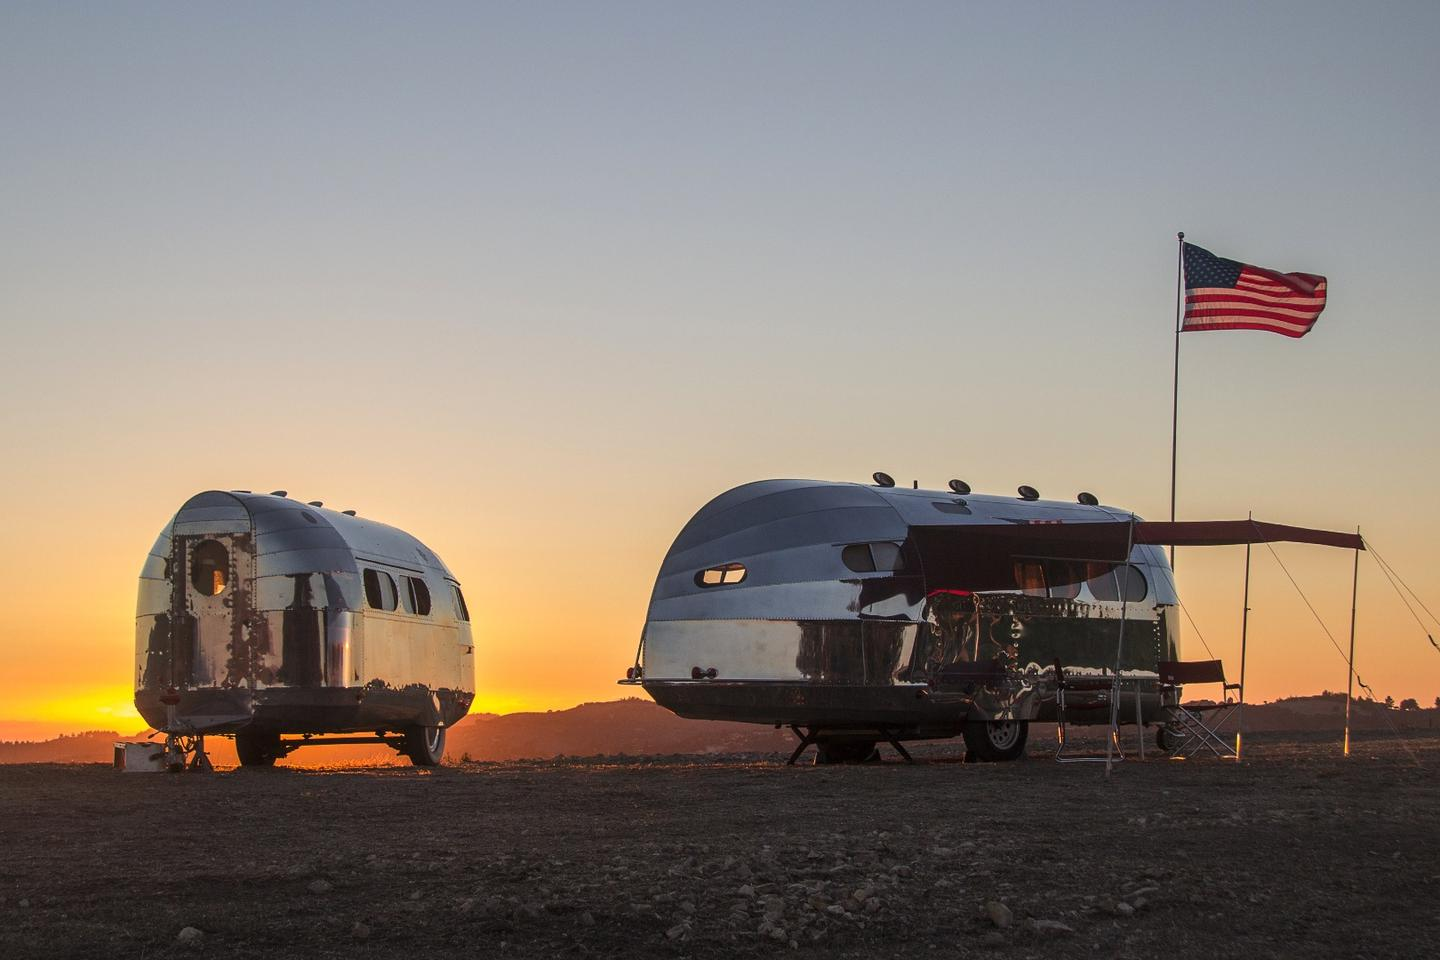 The Bowlus Road Chief Lithium+ is billed as the world's most technologically advanced trailer and has the features to make the argument